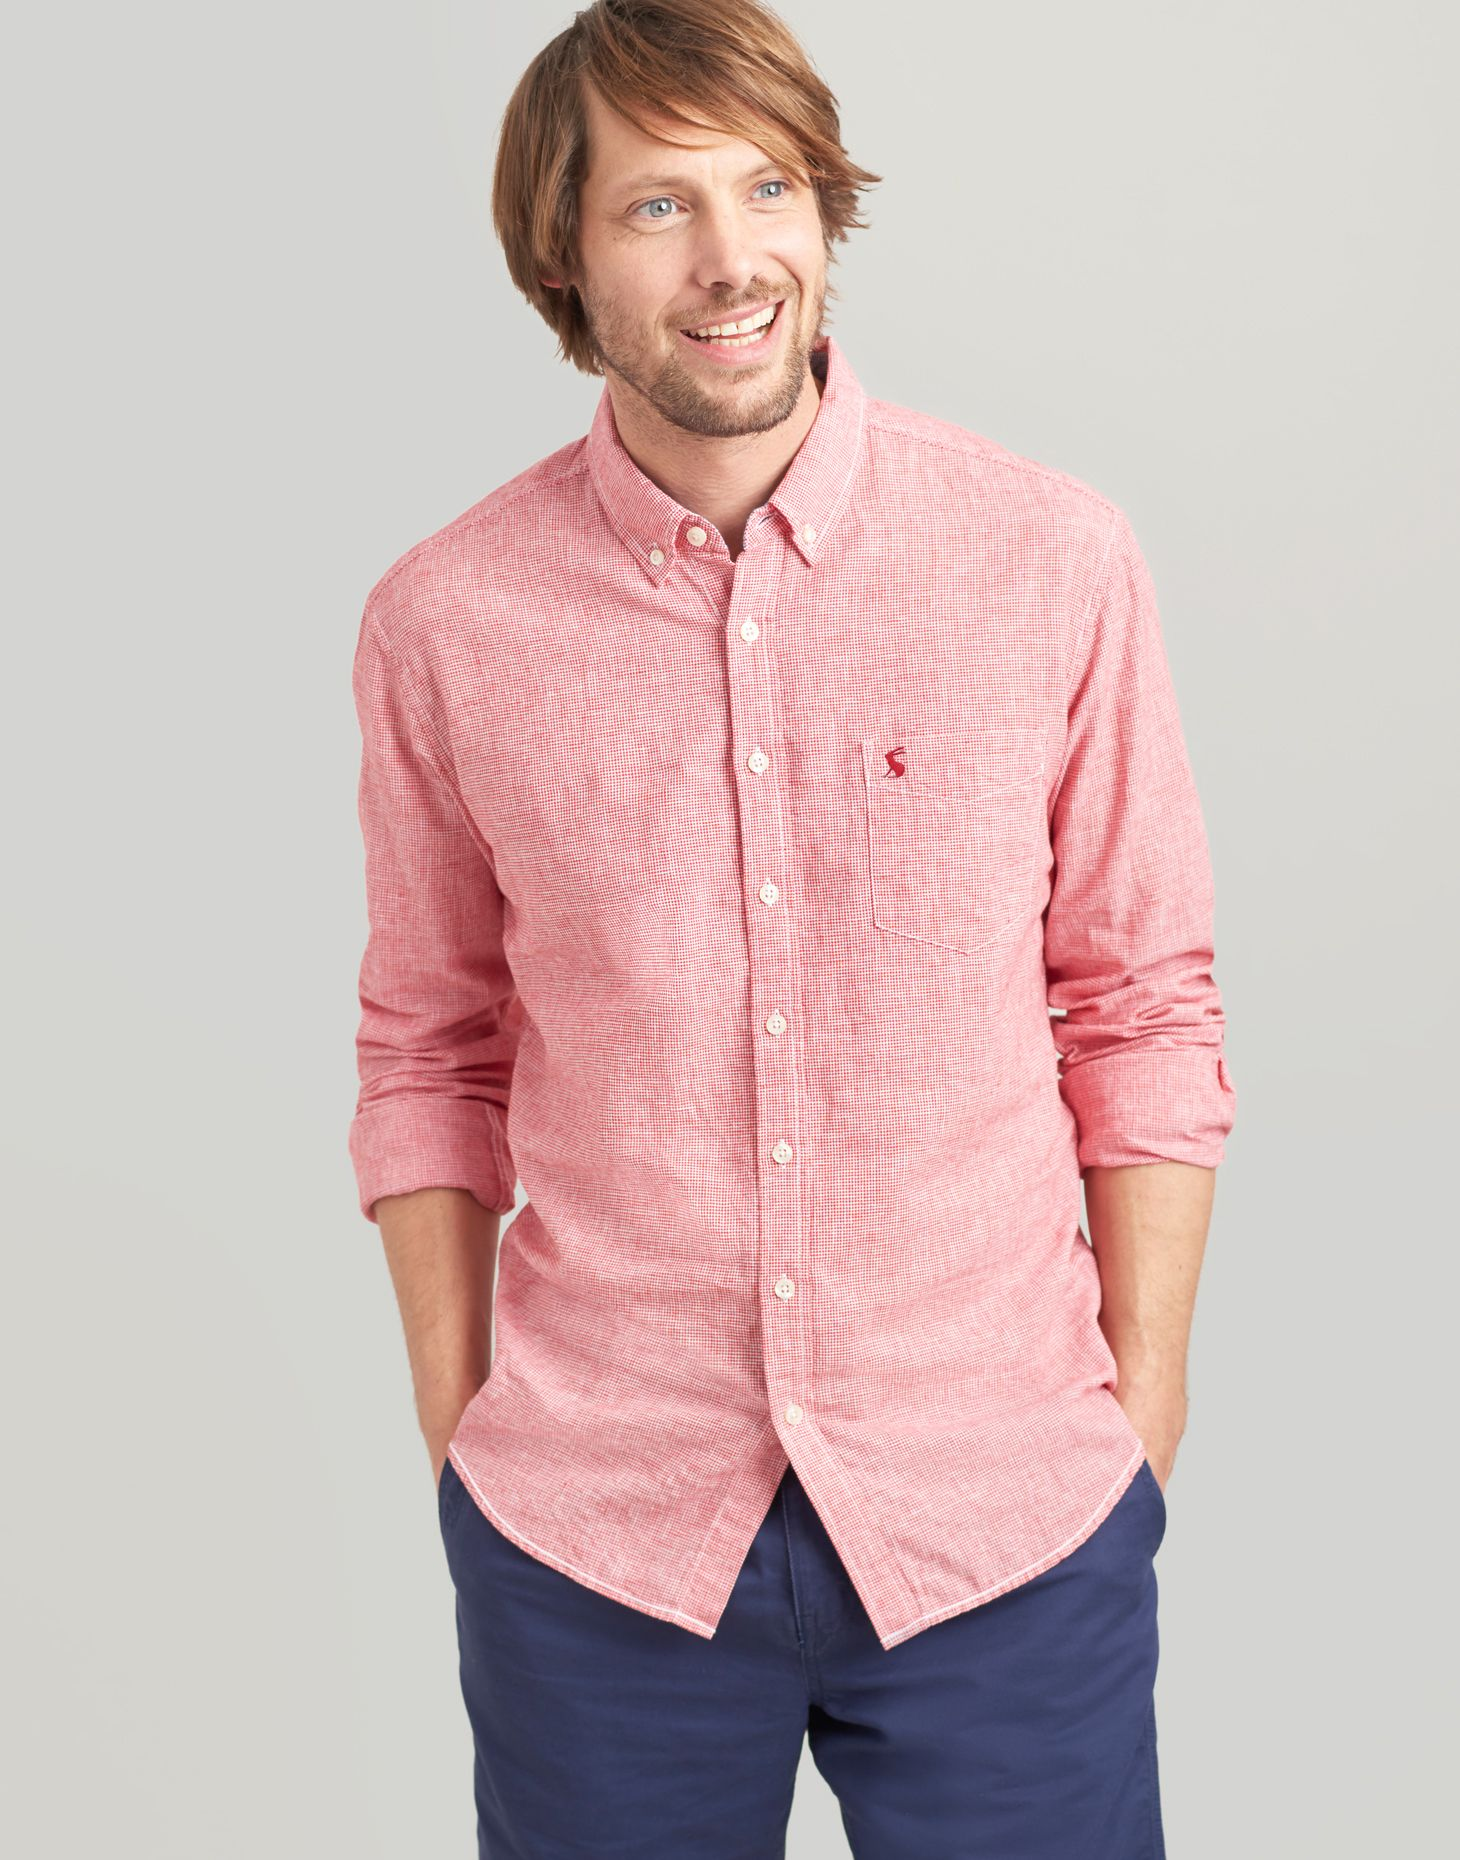 Joules 204581 Long Sleeve Classic Fit Shirt in WASHED PINK